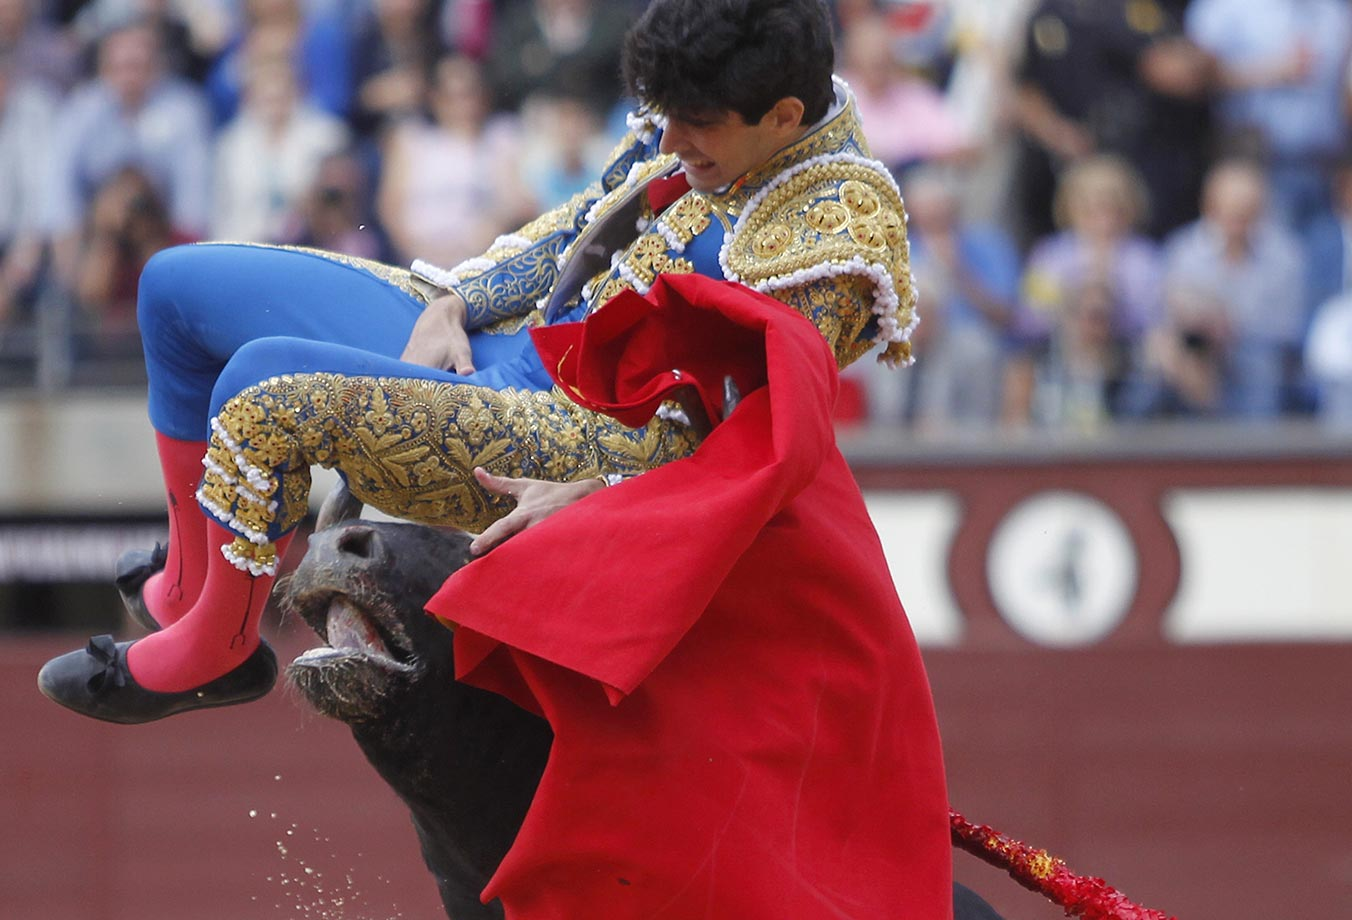 Spanish matador Alberto Lopez Simon is thrown in the air by a bull during the Otono Feria at Las Ventas bullring in Madrid.